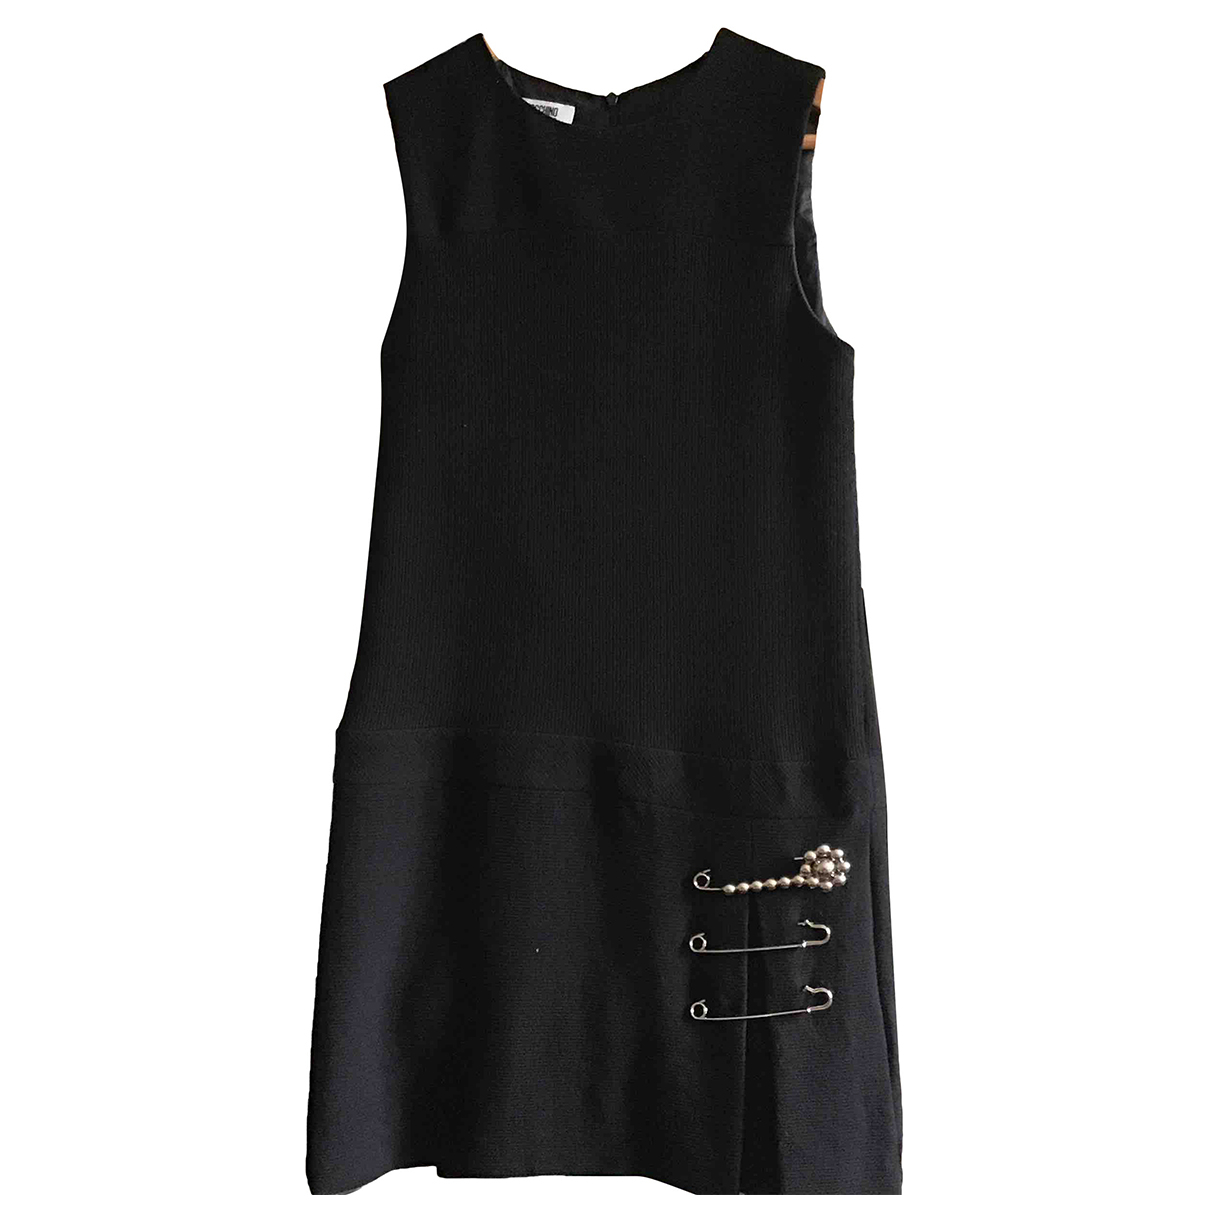 Moschino Cheap And Chic \N Kleid in  Schwarz Wolle